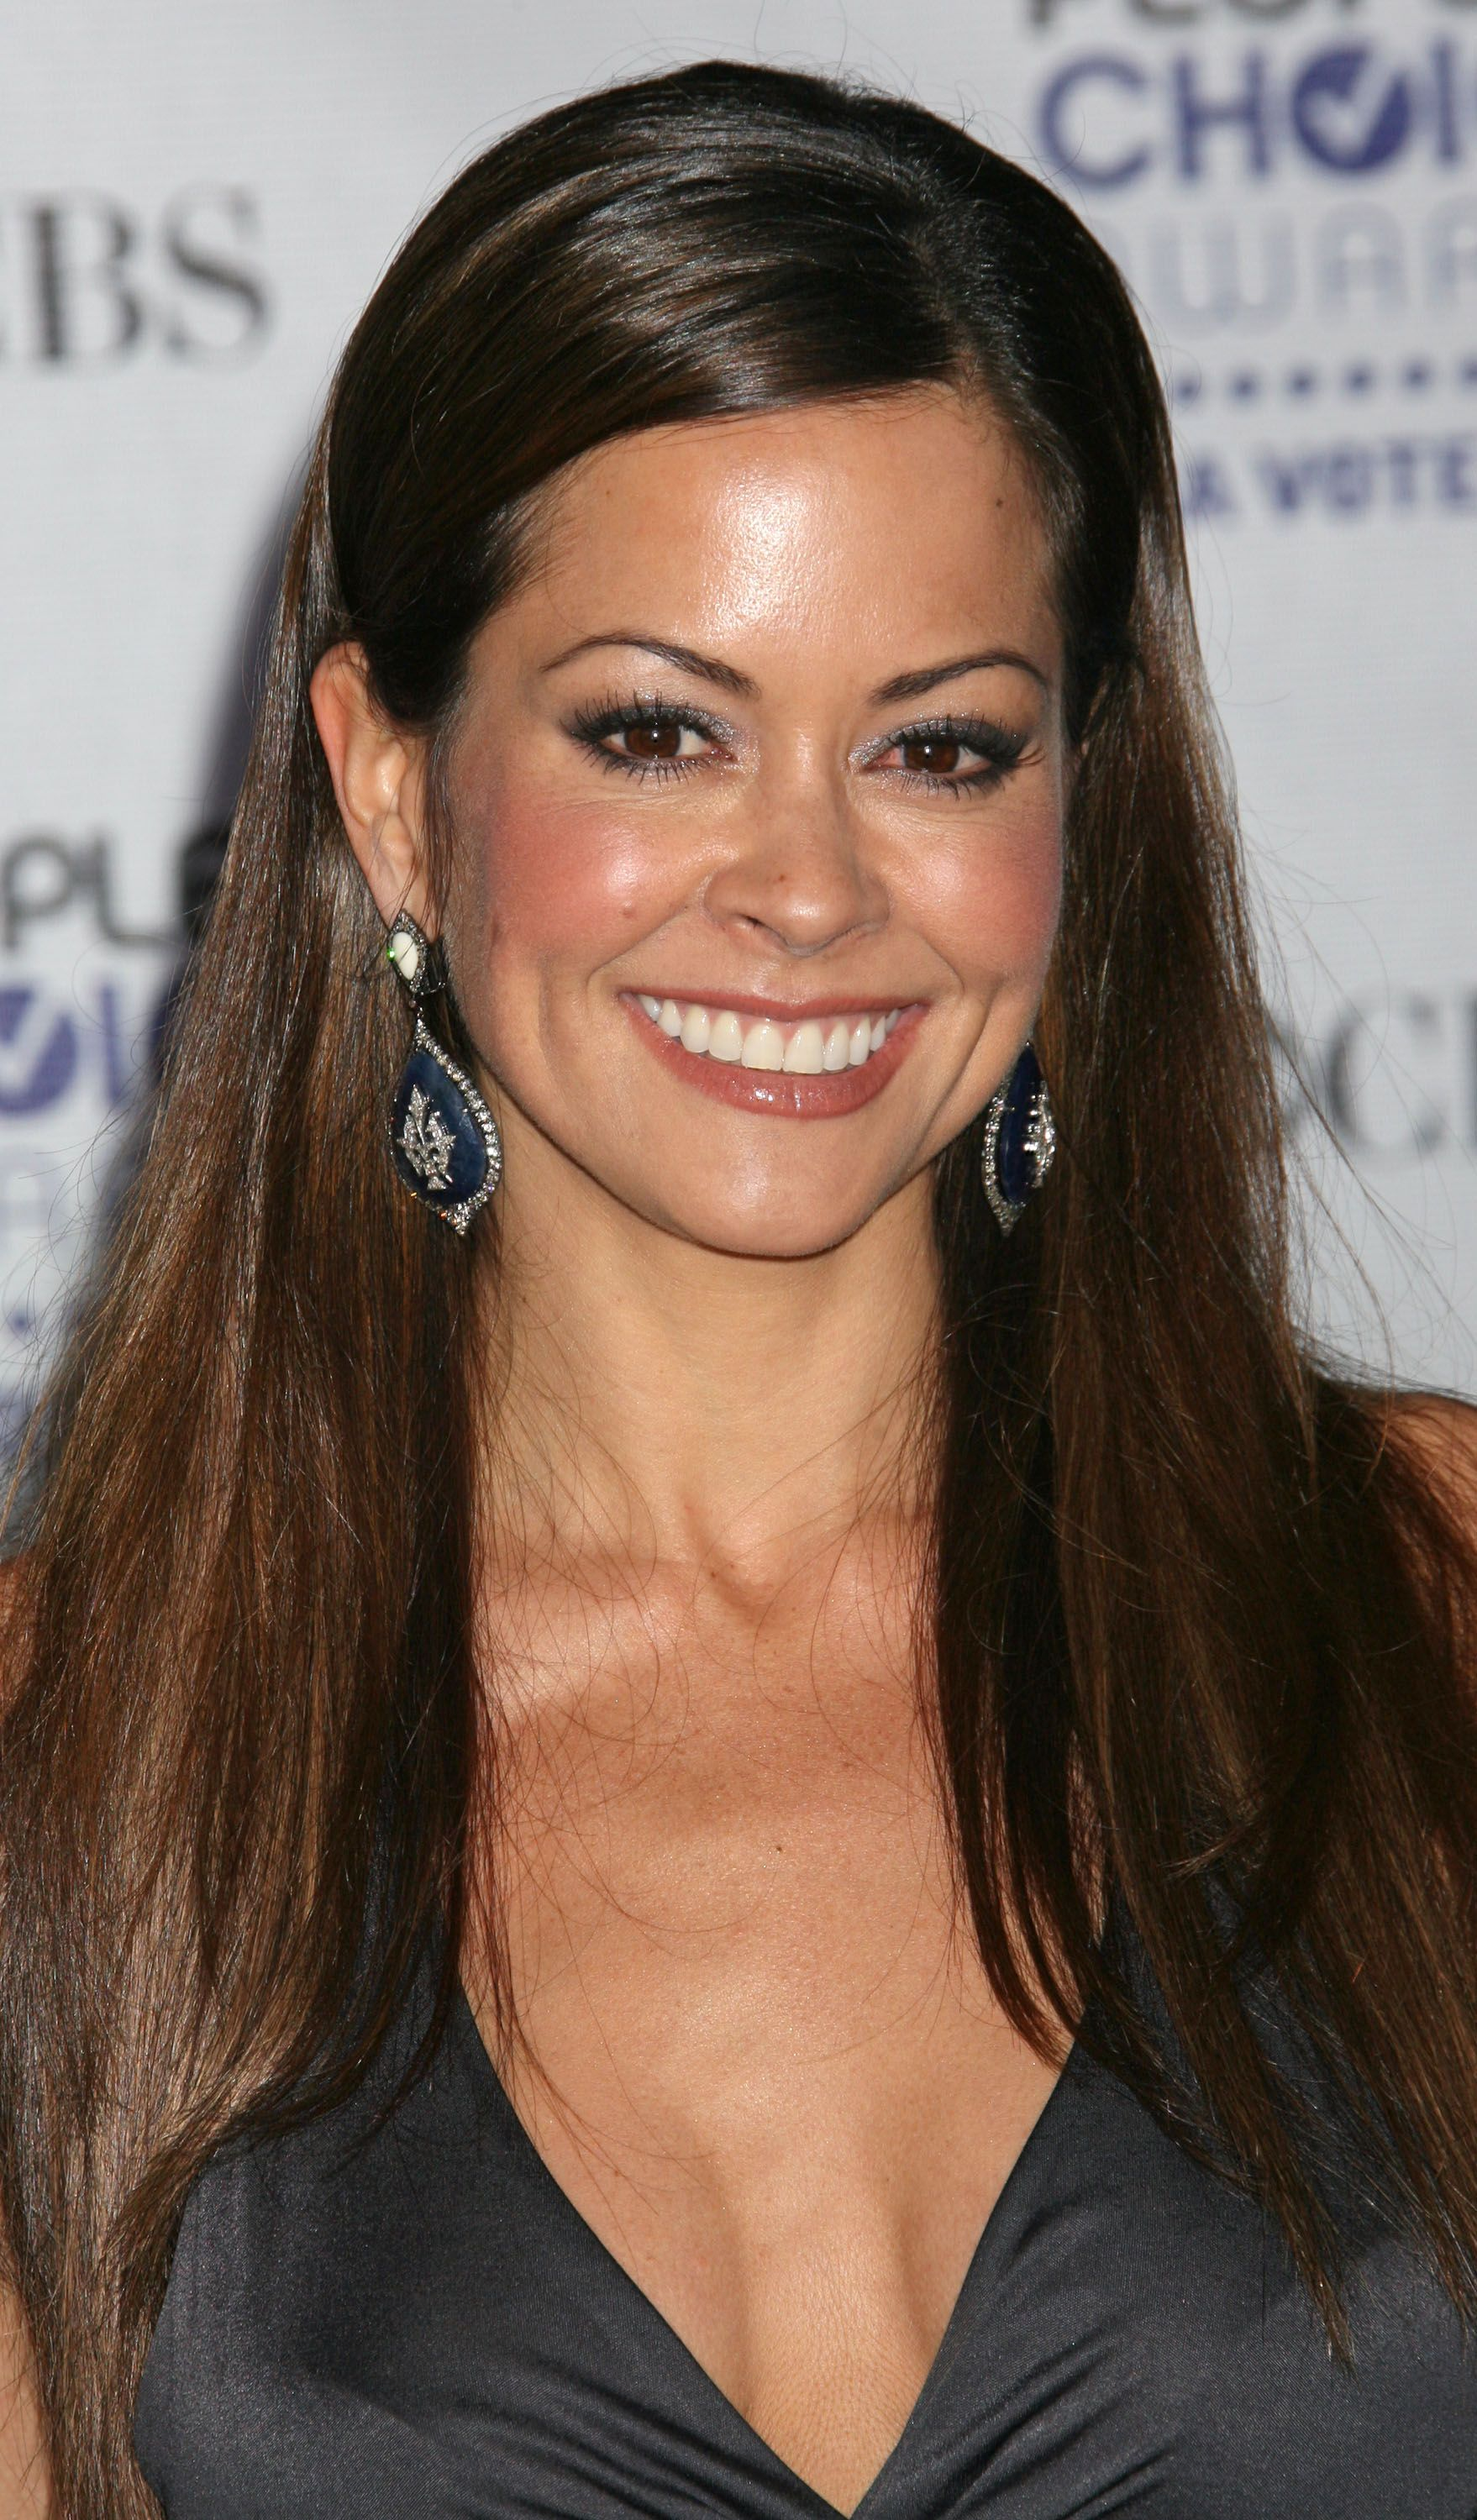 Hacked Brooke Burke-Charvet naked (48 photos), Topless, Cleavage, Instagram, cameltoe 2015